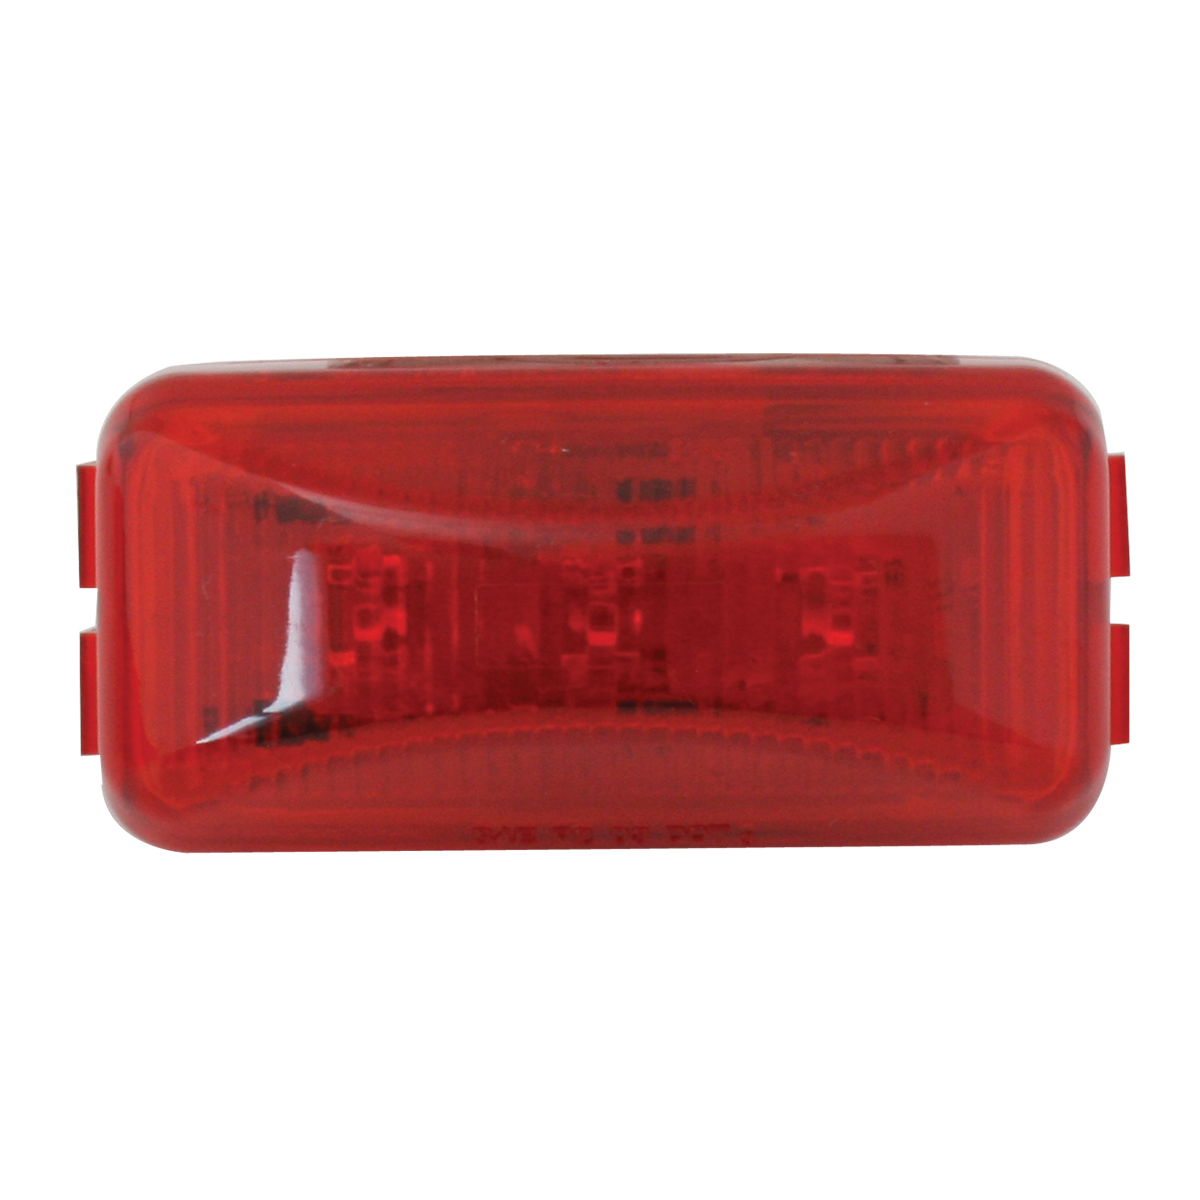 87645 Small Rectangular LED Marker Light in Red/Red